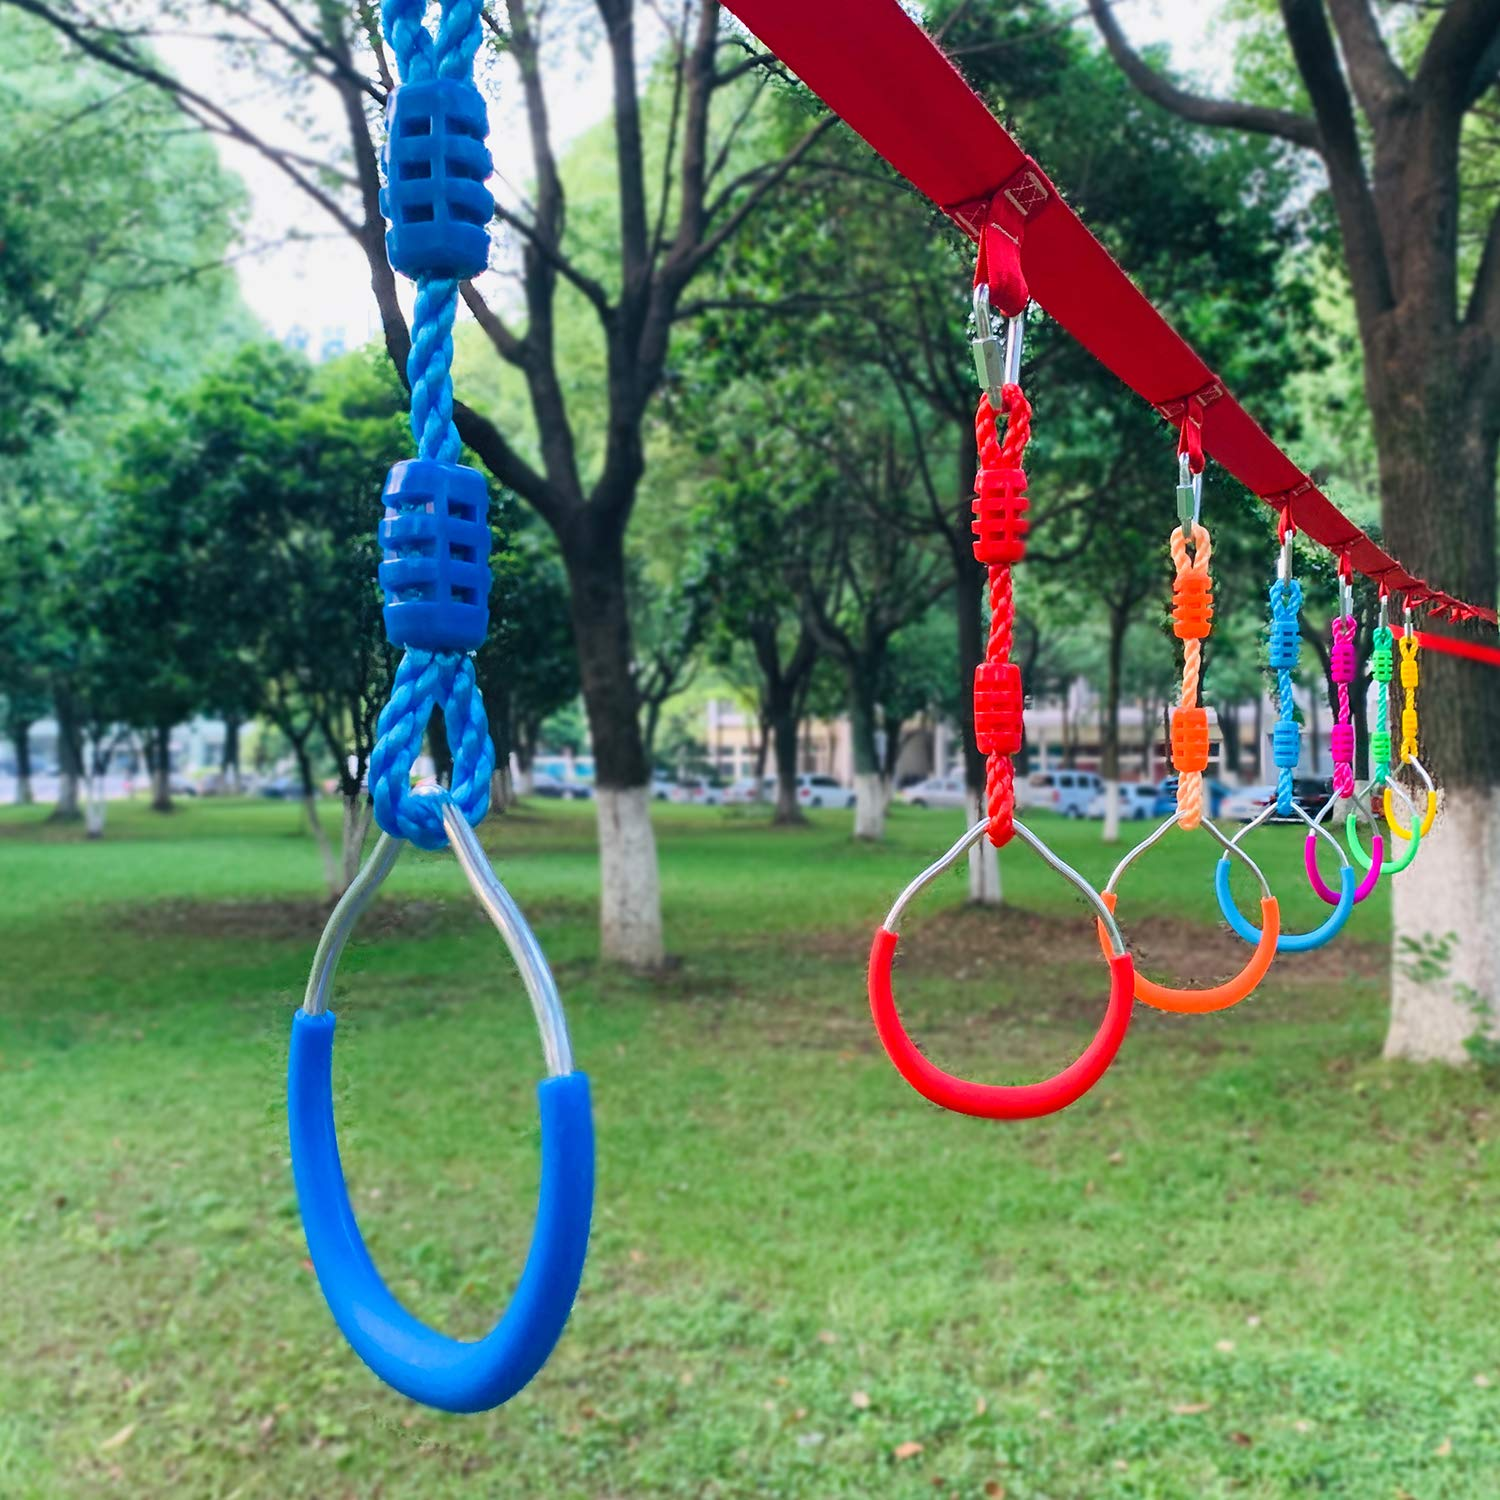 Rainbow Craft Swing Bar Rings - Colorful Backyard Outdoor Gymnastic Ring, Ninja Ring, Monkey Ring, Climbing Ring and Obstacle Ring- 7 pcs Pack by Rainbow Craft (Image #3)